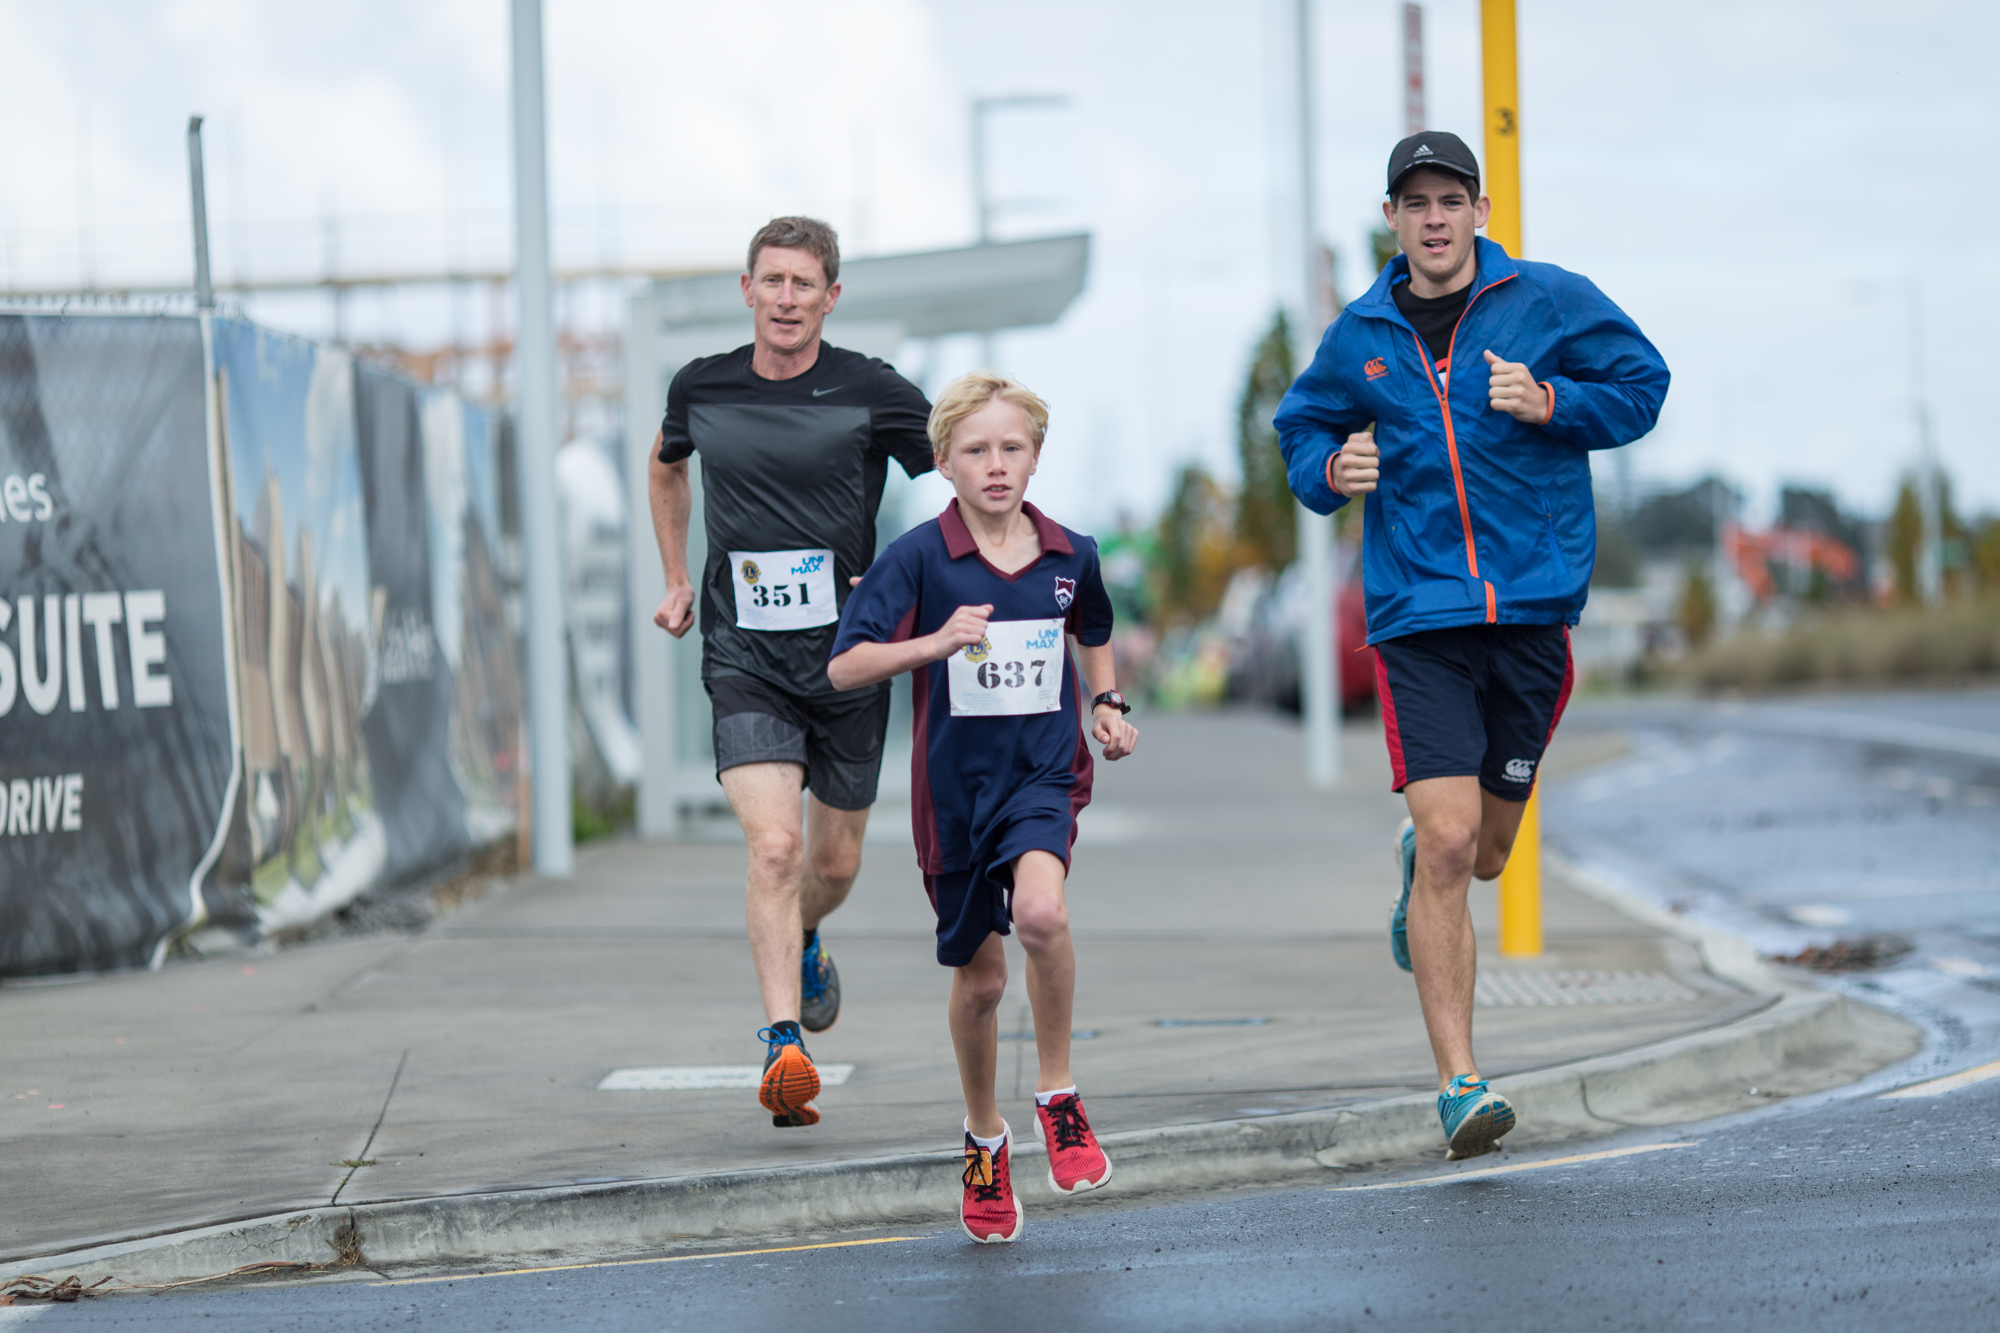 The Hobsonville Point Runway Challenge